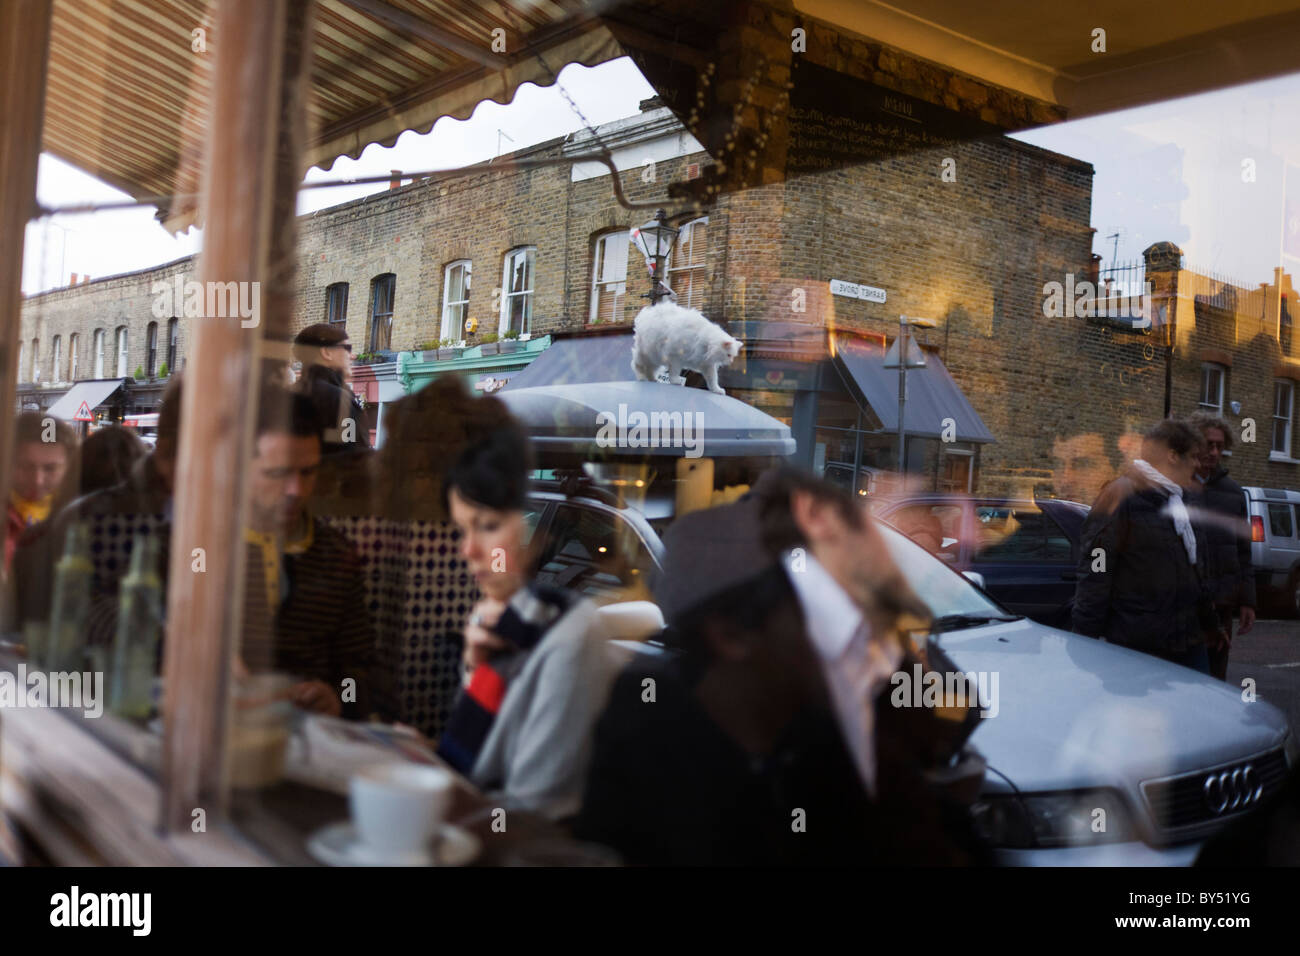 A white cat and cafe customers are reflected in the window of Campania Gastronomia cafe on Columbia Street and Barnet - Stock Image